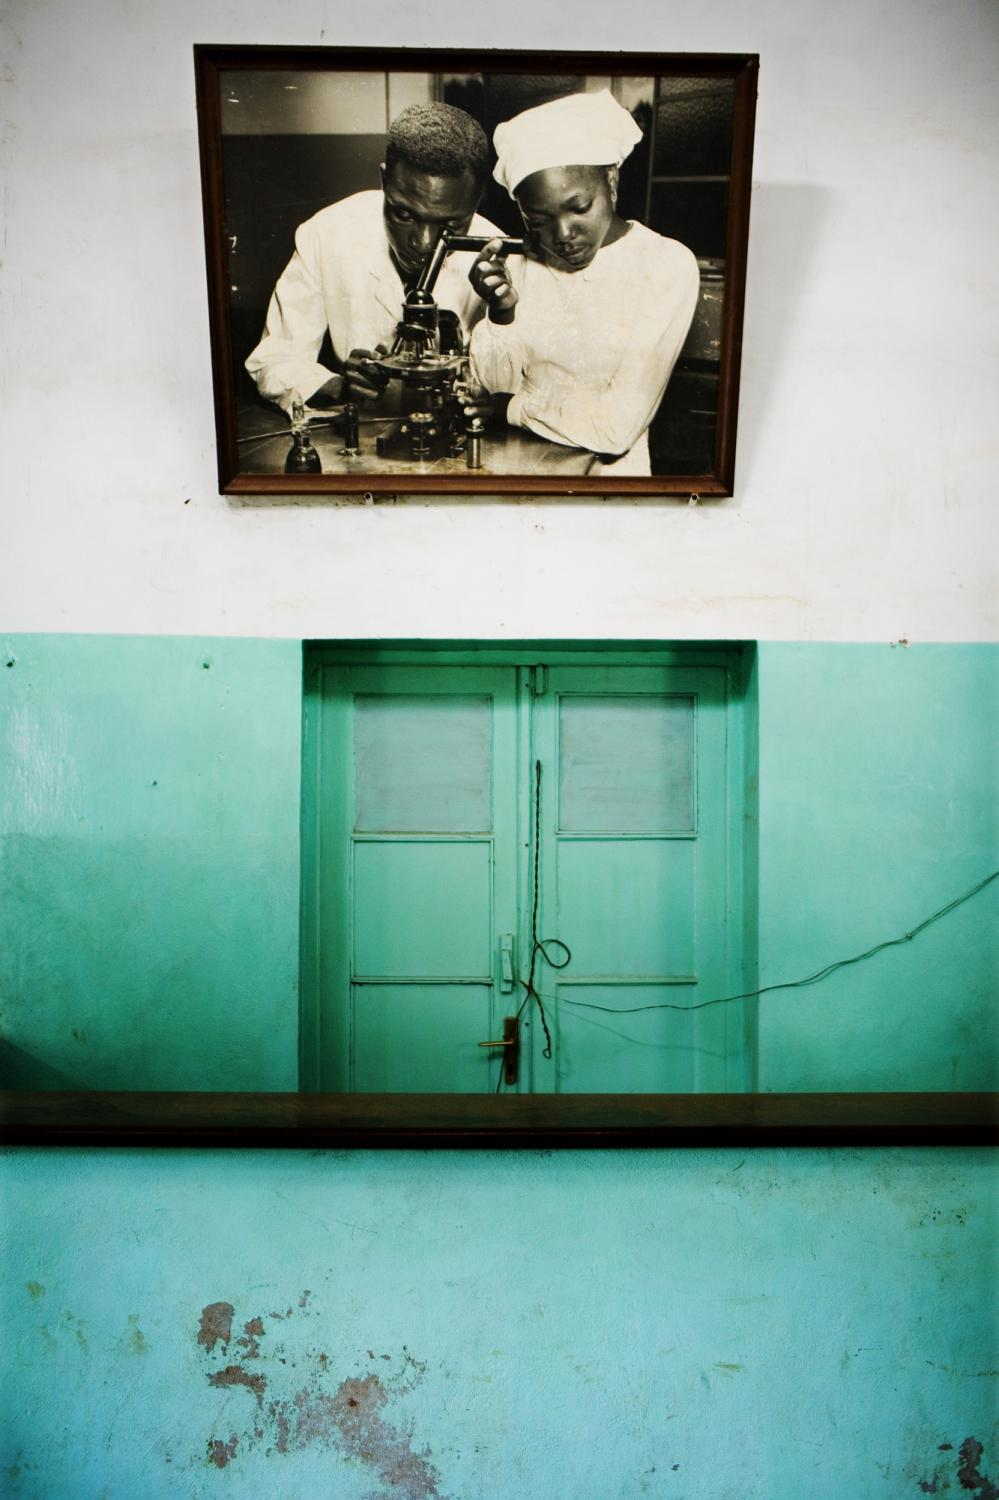 DEMOCRATIC REPUBLIC OF CONGO Bukavu, South Kivu Province An old framed photograph of a doctor and nurse looking through a microscope hangs at the entrance to Bukavu General Hospital.